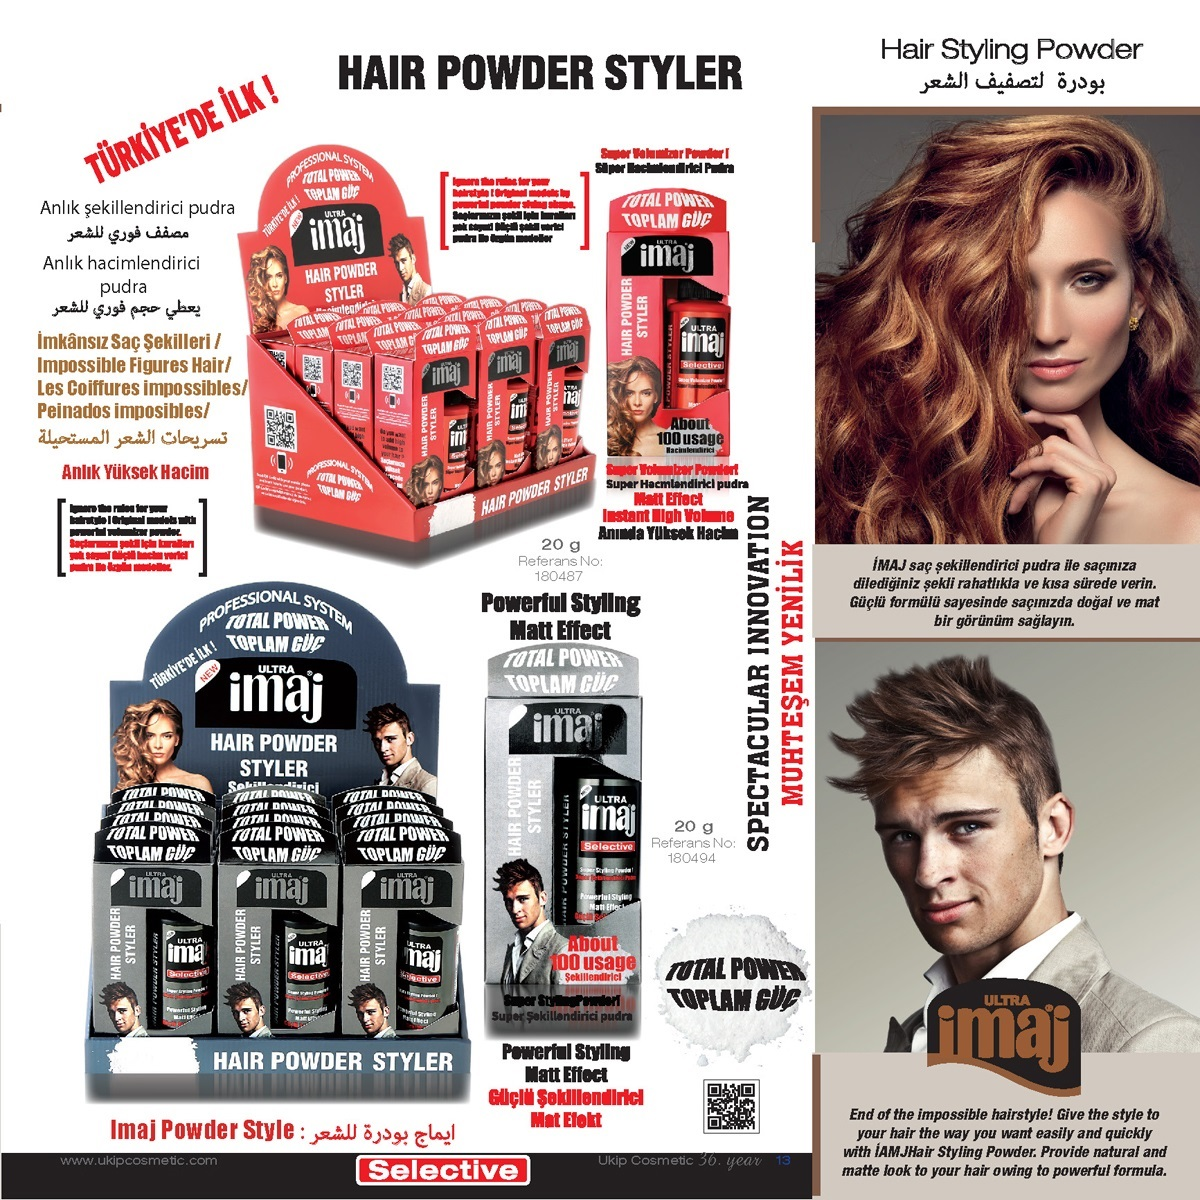 Imaj Ultra Hair Powder